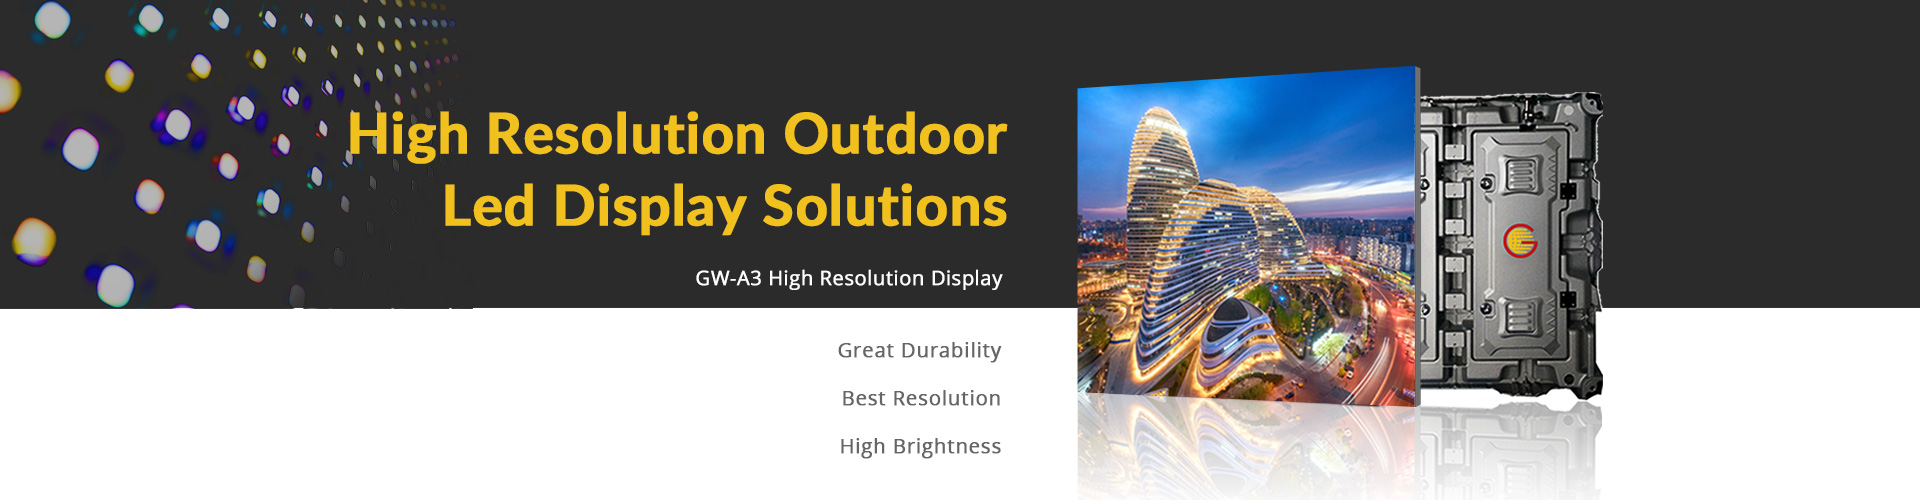 high resolution qutdoor led display solutions